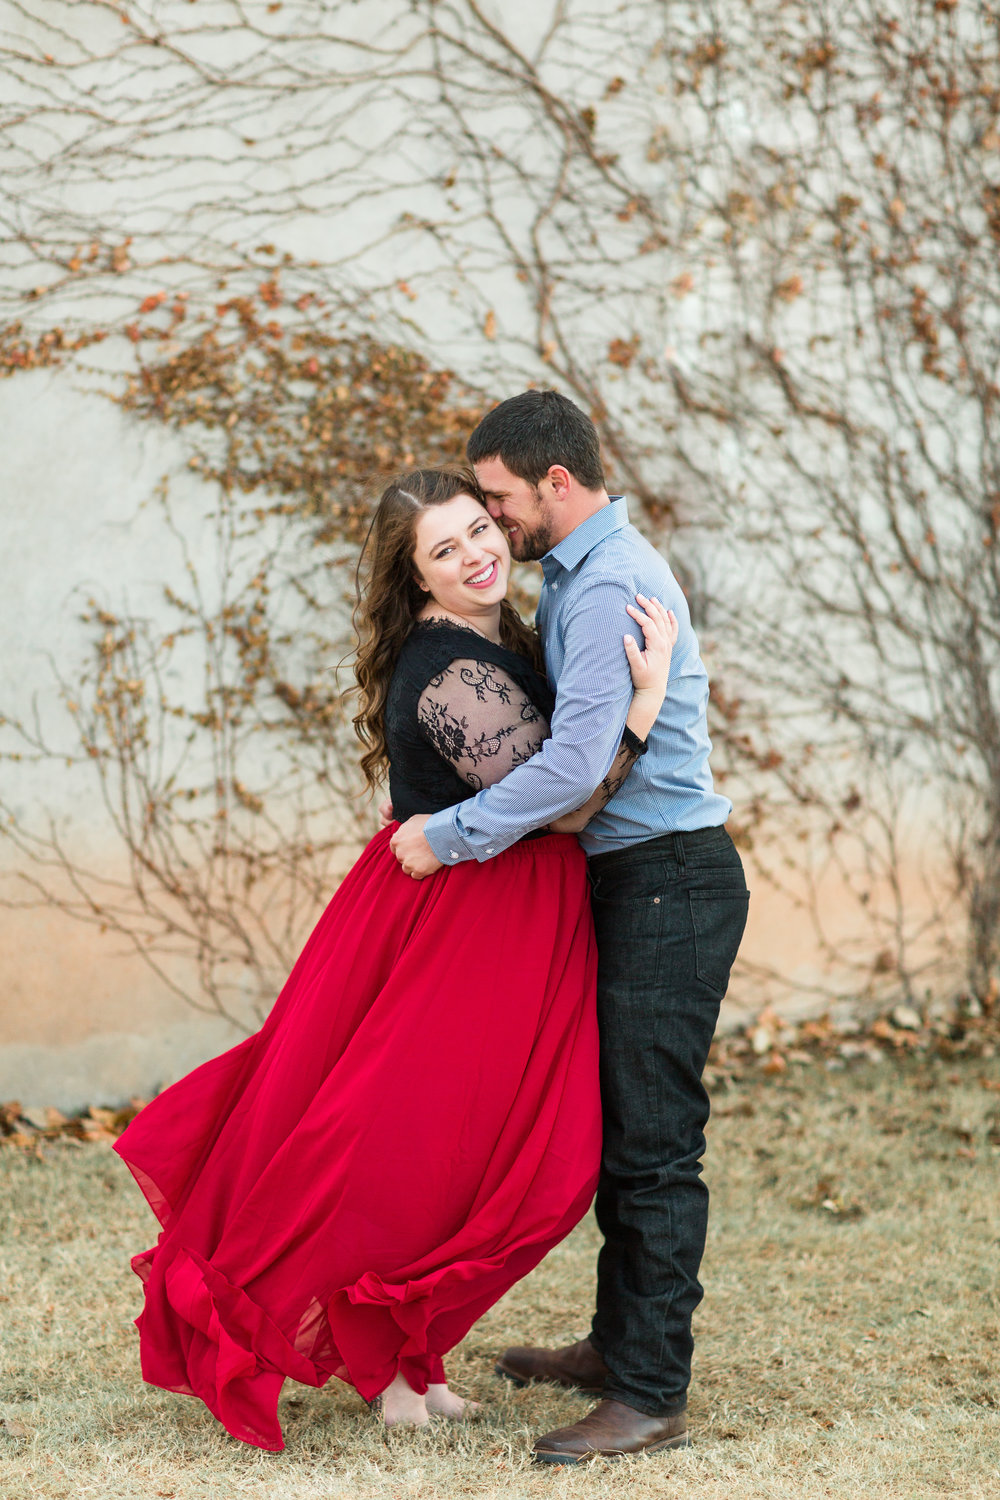 Flowy skirt Engagement Photos, The Baumberhof